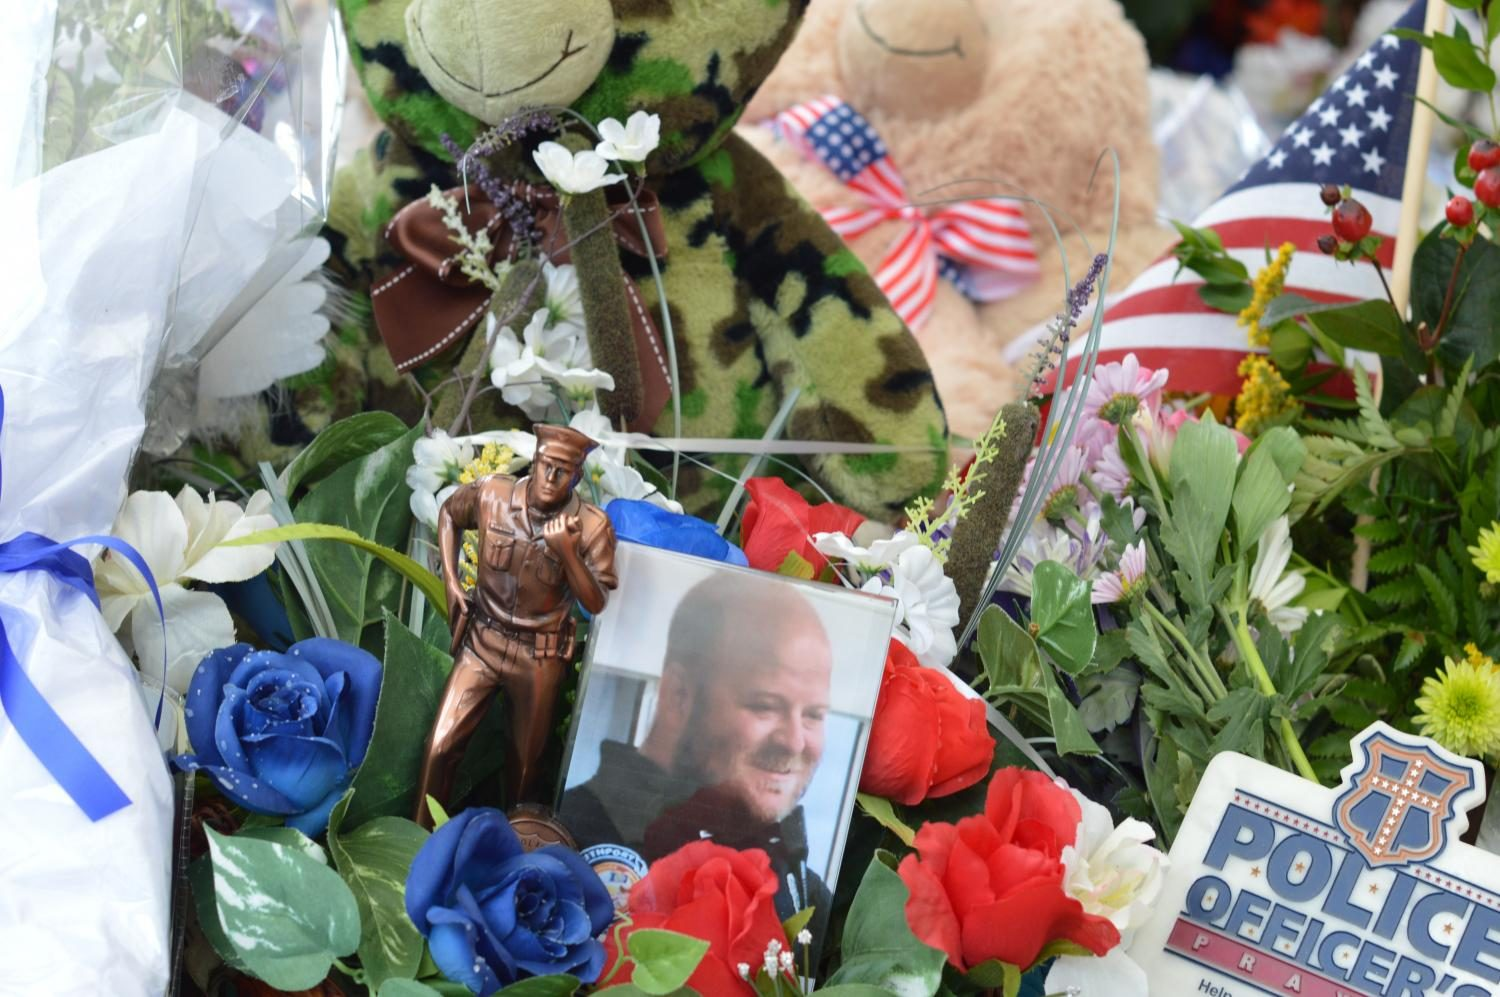 The memorial for Lt. Allan's memory on Tuesday, August 1. The community began contributing items such as letters, candles, teddy bears and flowers on Thursday and have continued to do so in the following days.